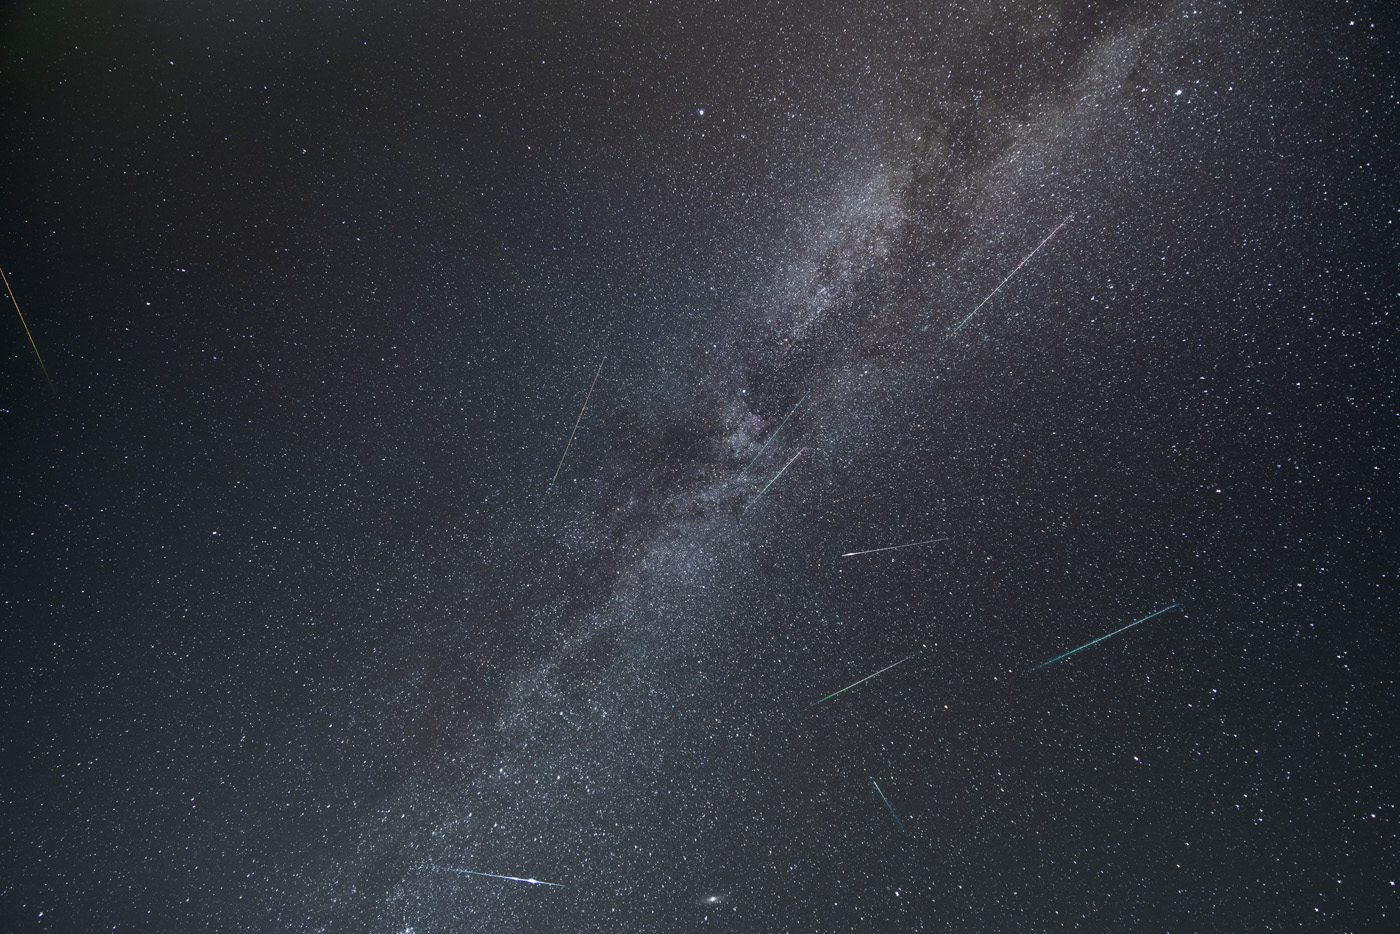 Perseid Meteors 2019 from Beech Fork State Park, WV